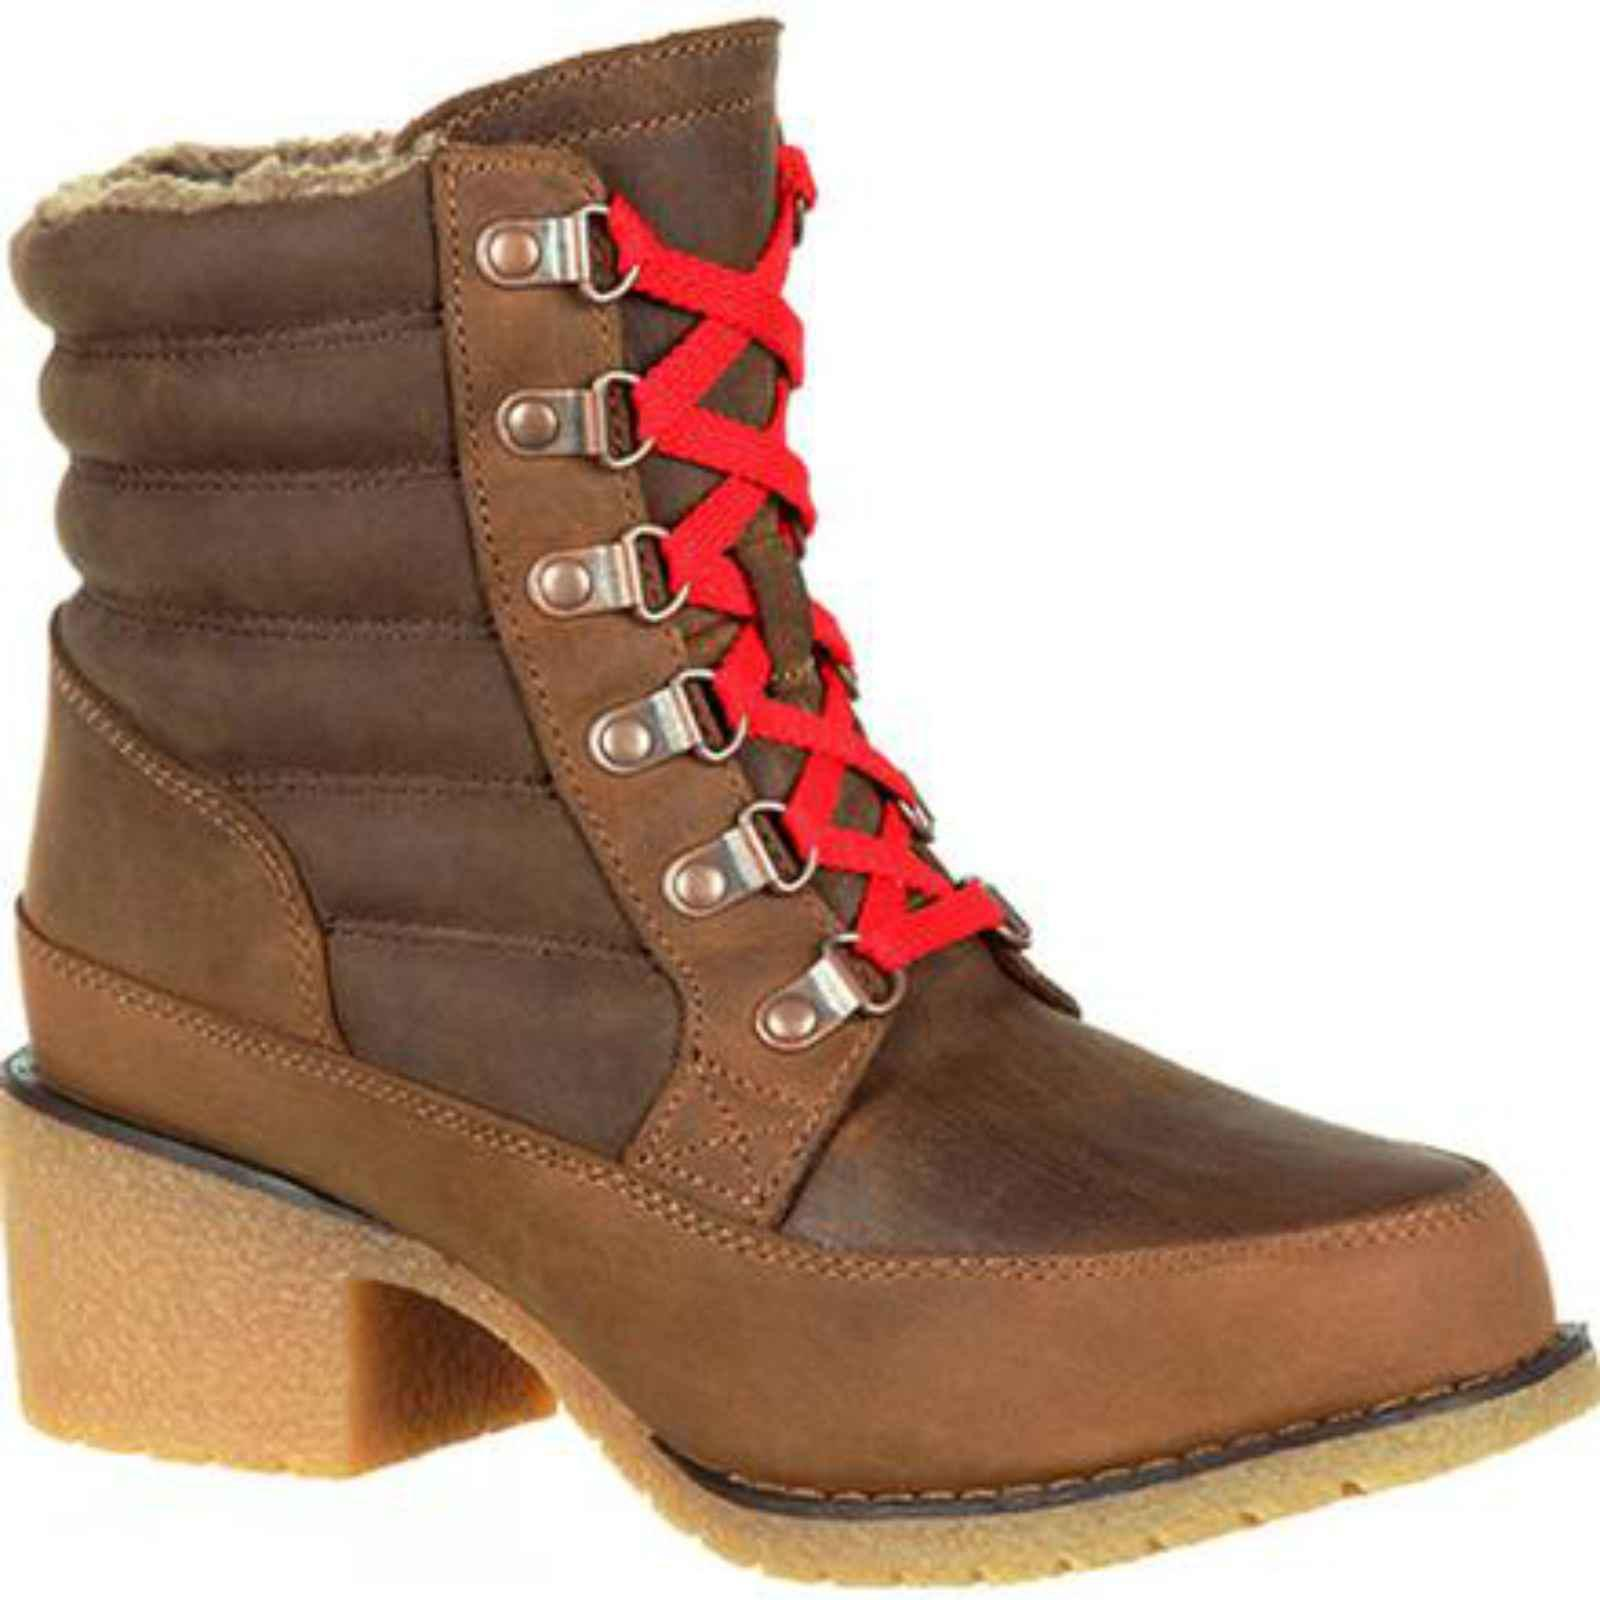 Durango Fashion Boots Womens Cabin Lacer Round Toe Brown DRD0152 by Durango